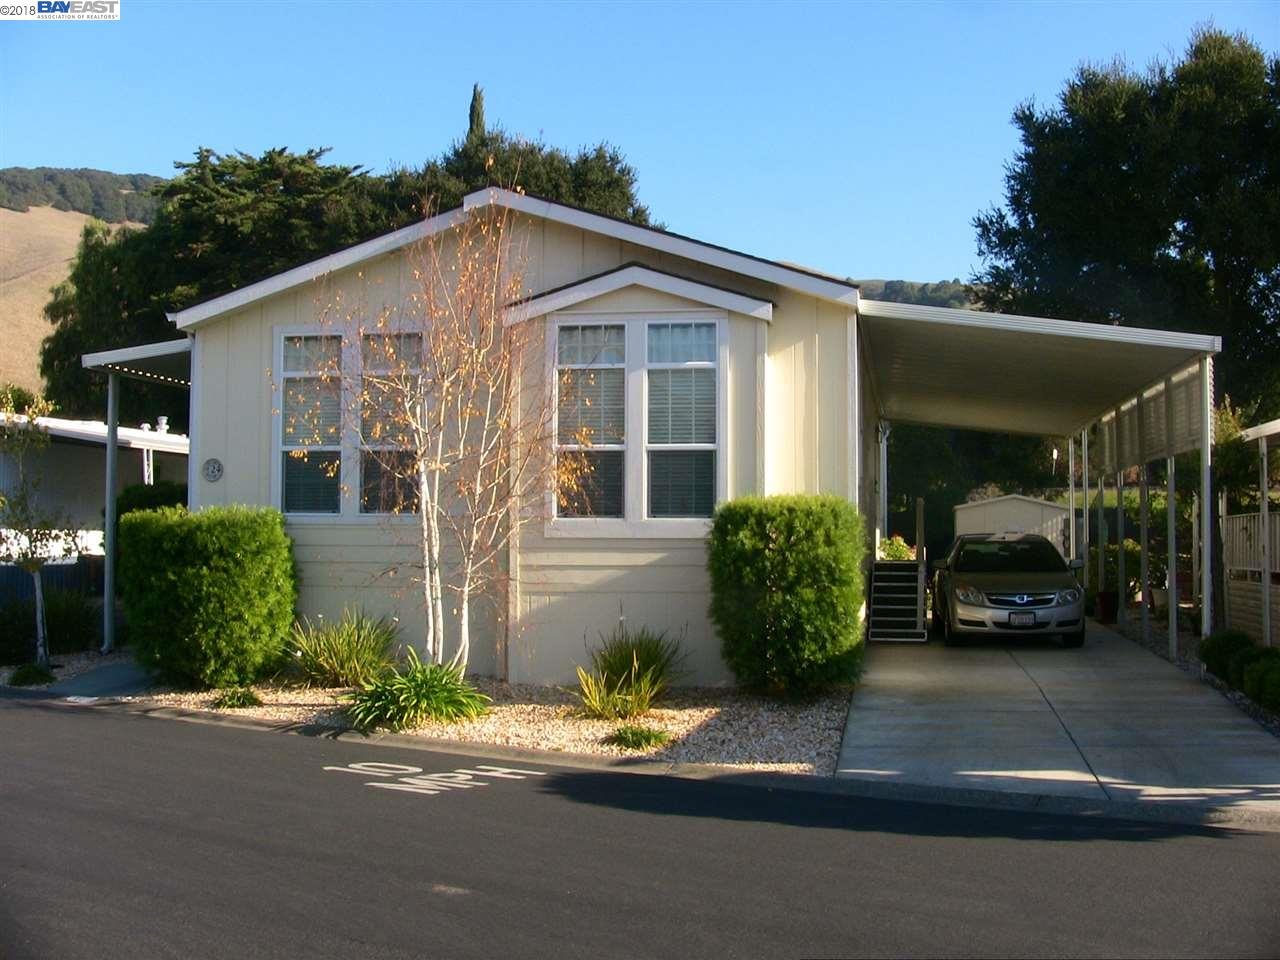 711 OLD CANYON RD, FREMONT, CA 94536